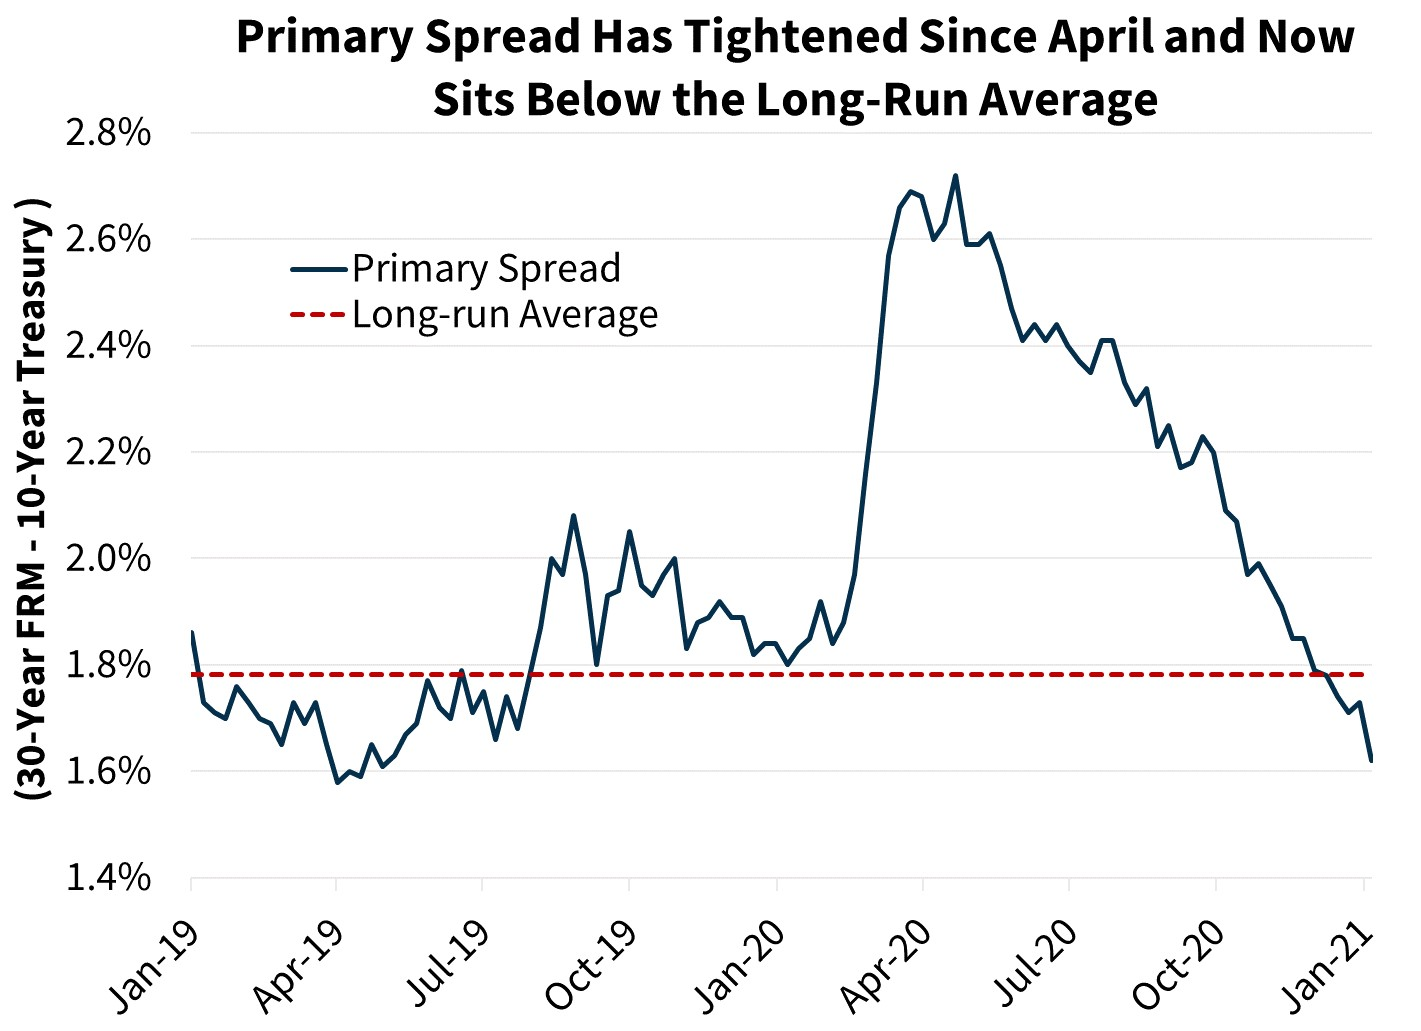 Primary Spread Has Tightened Since April and Now Sits Below the Long-Run Average